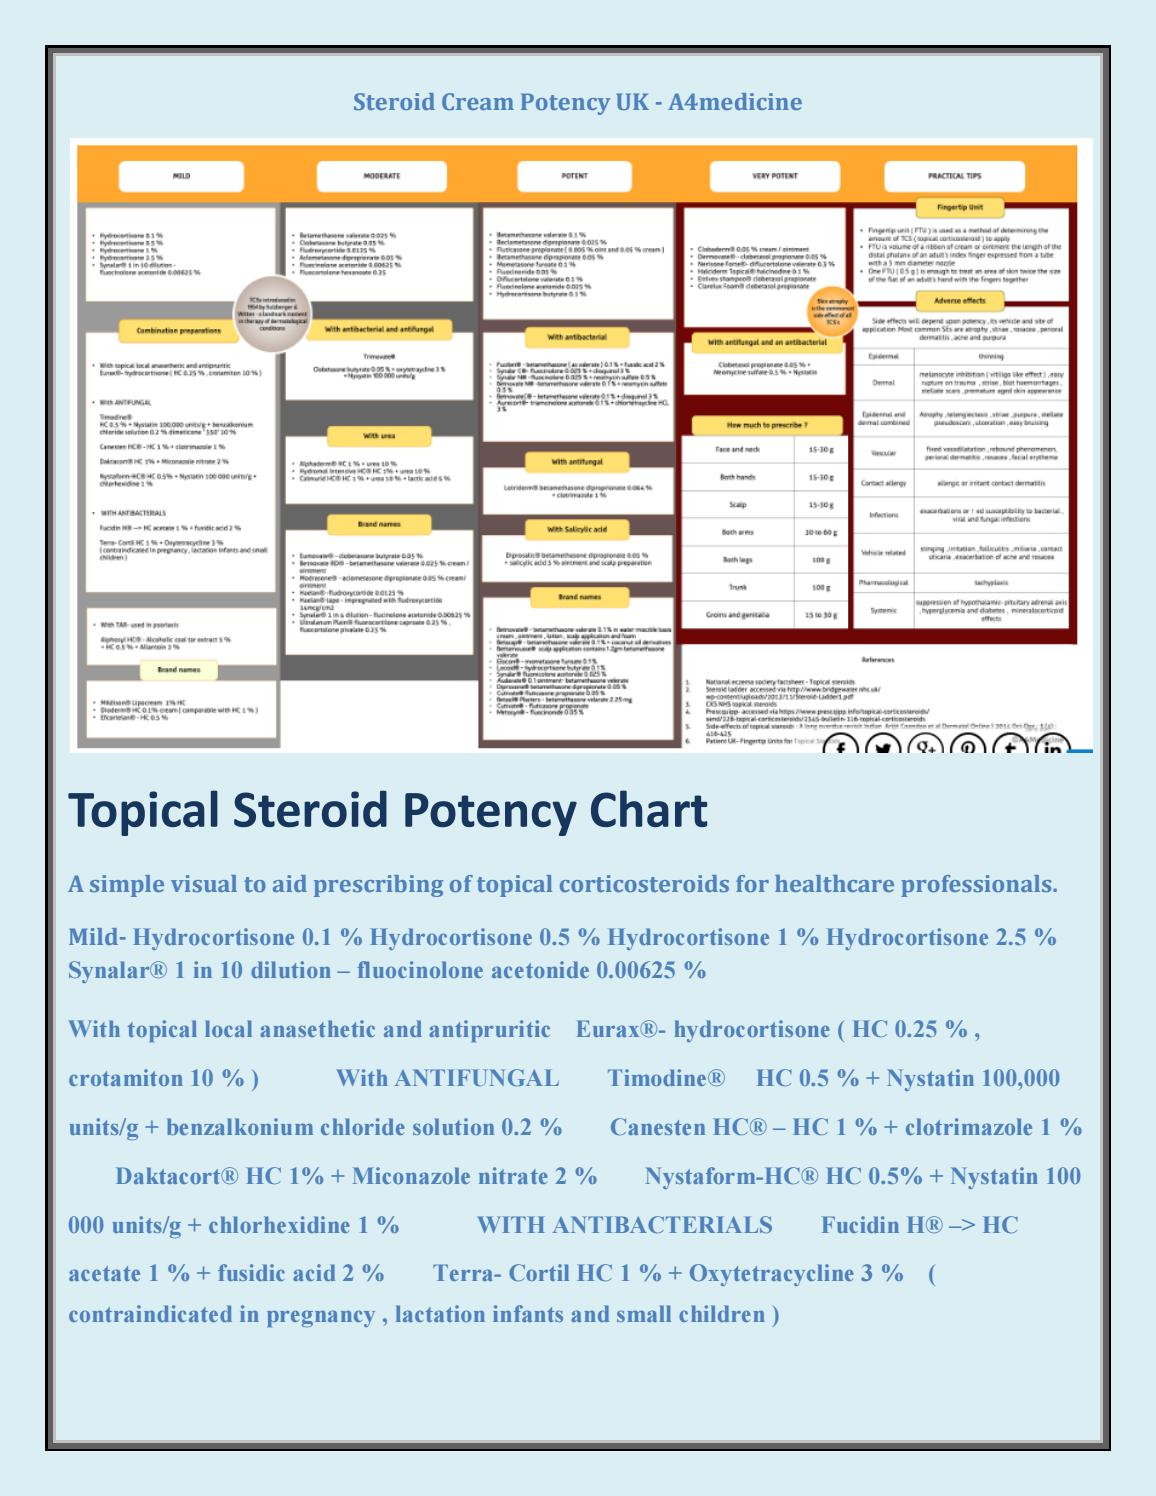 steroid topical potency chart